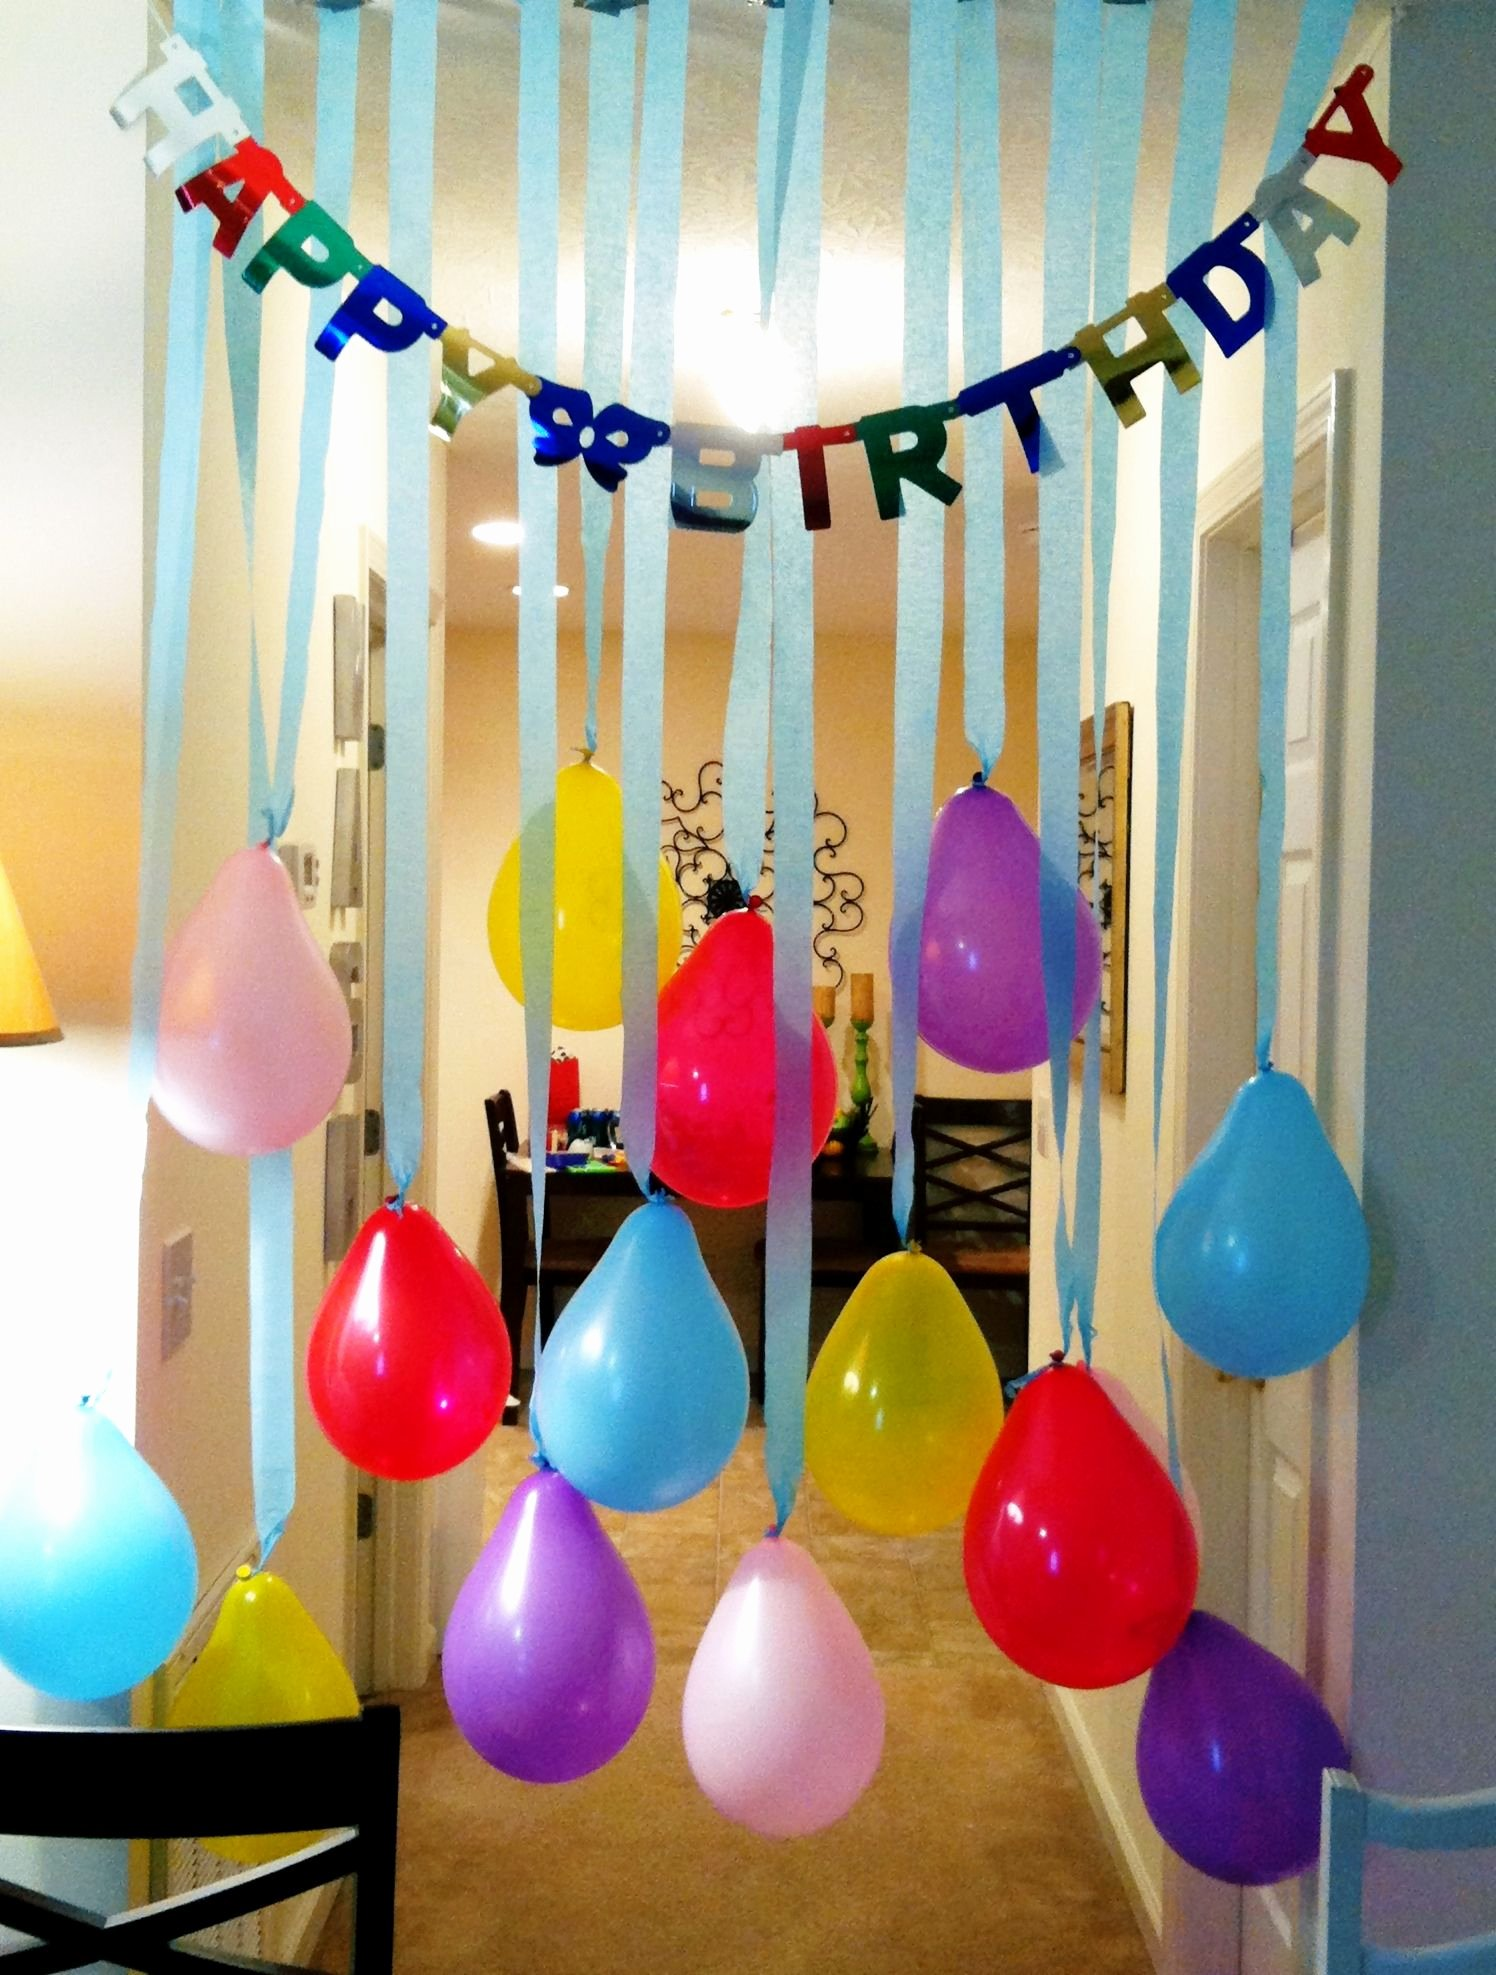 Happy Birthday Decoration Ideas Simple Inspirational Birthday Banner & Streamers Easy Peasy Lemon Squeezy